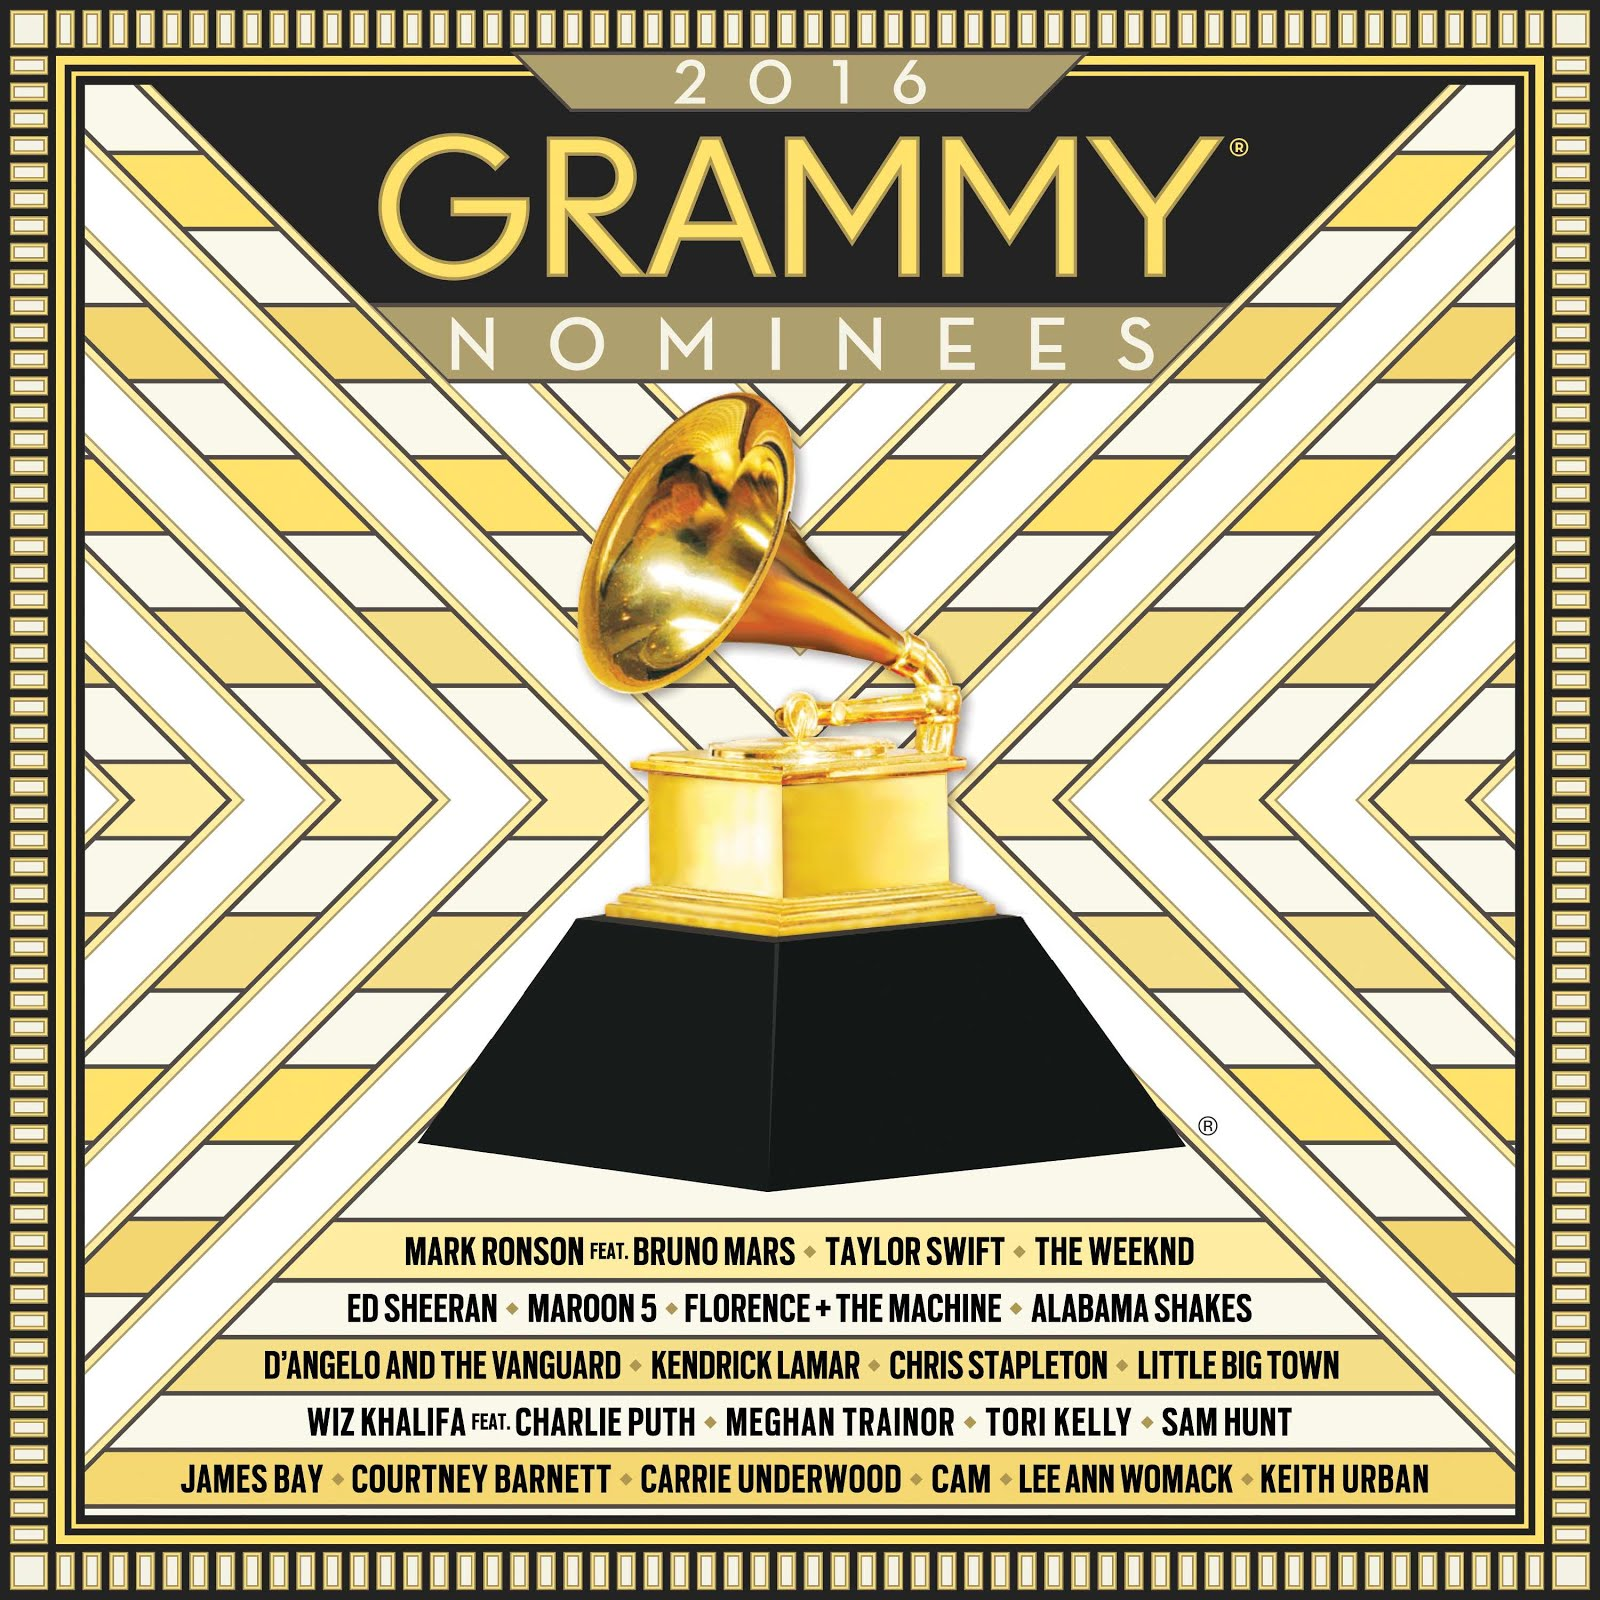 Our Review of the 2016 GRAMMY® NOMINEES ALBUM